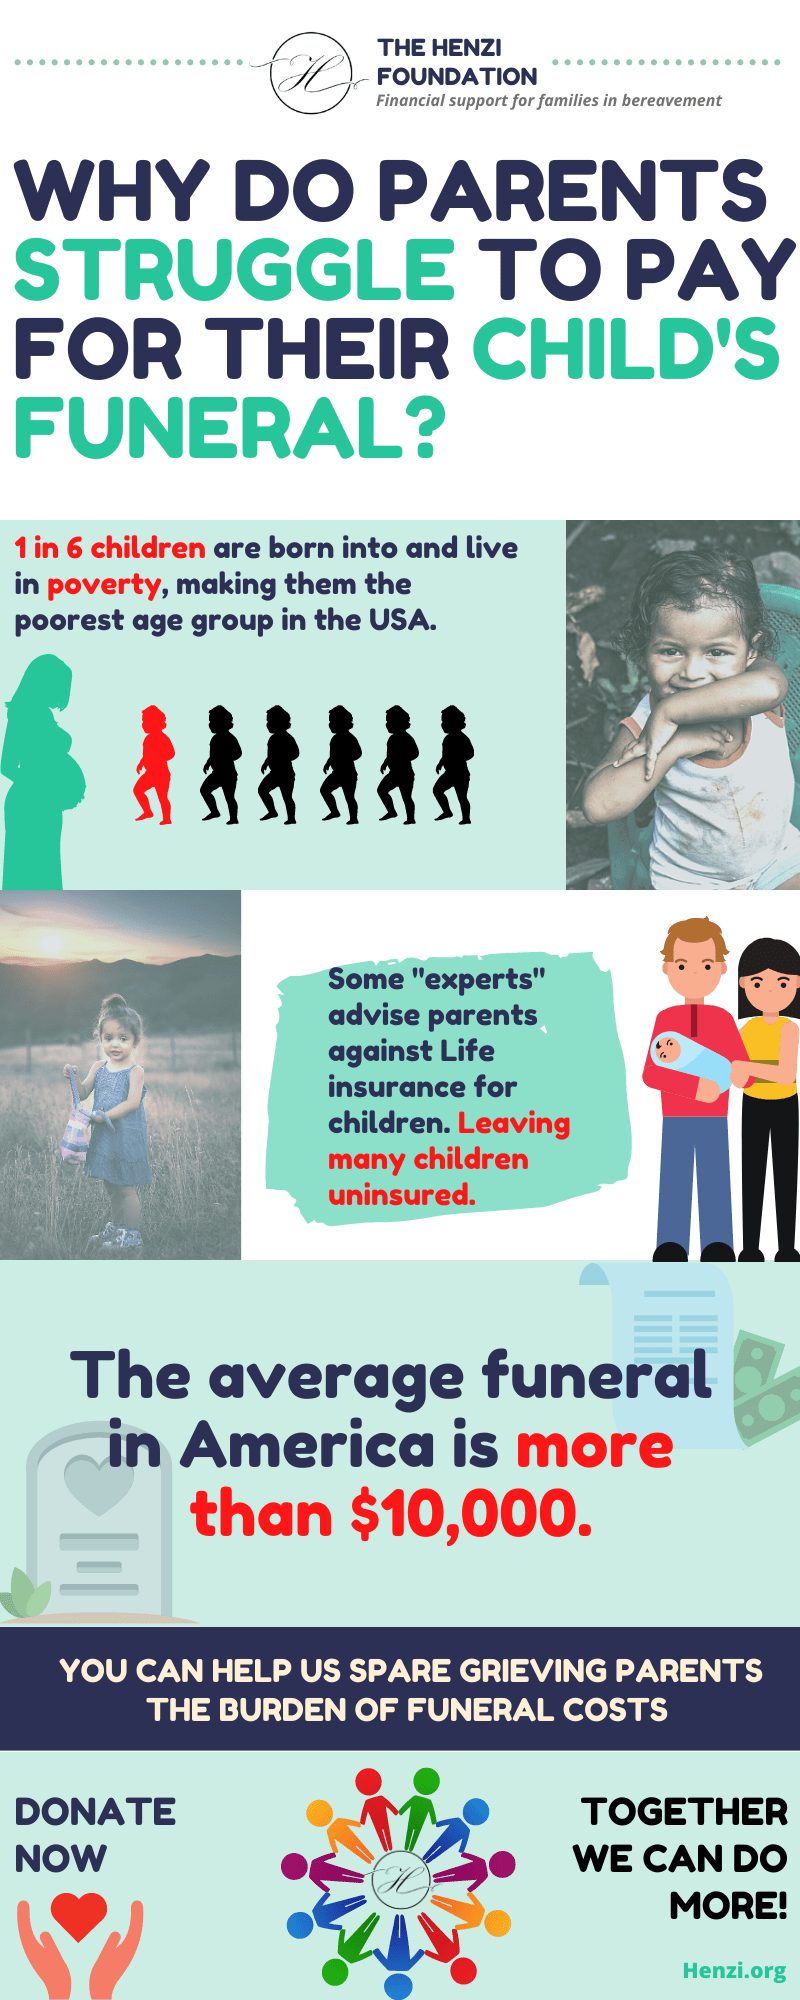 Too many children are underinsured and parents cannot afford a funeral